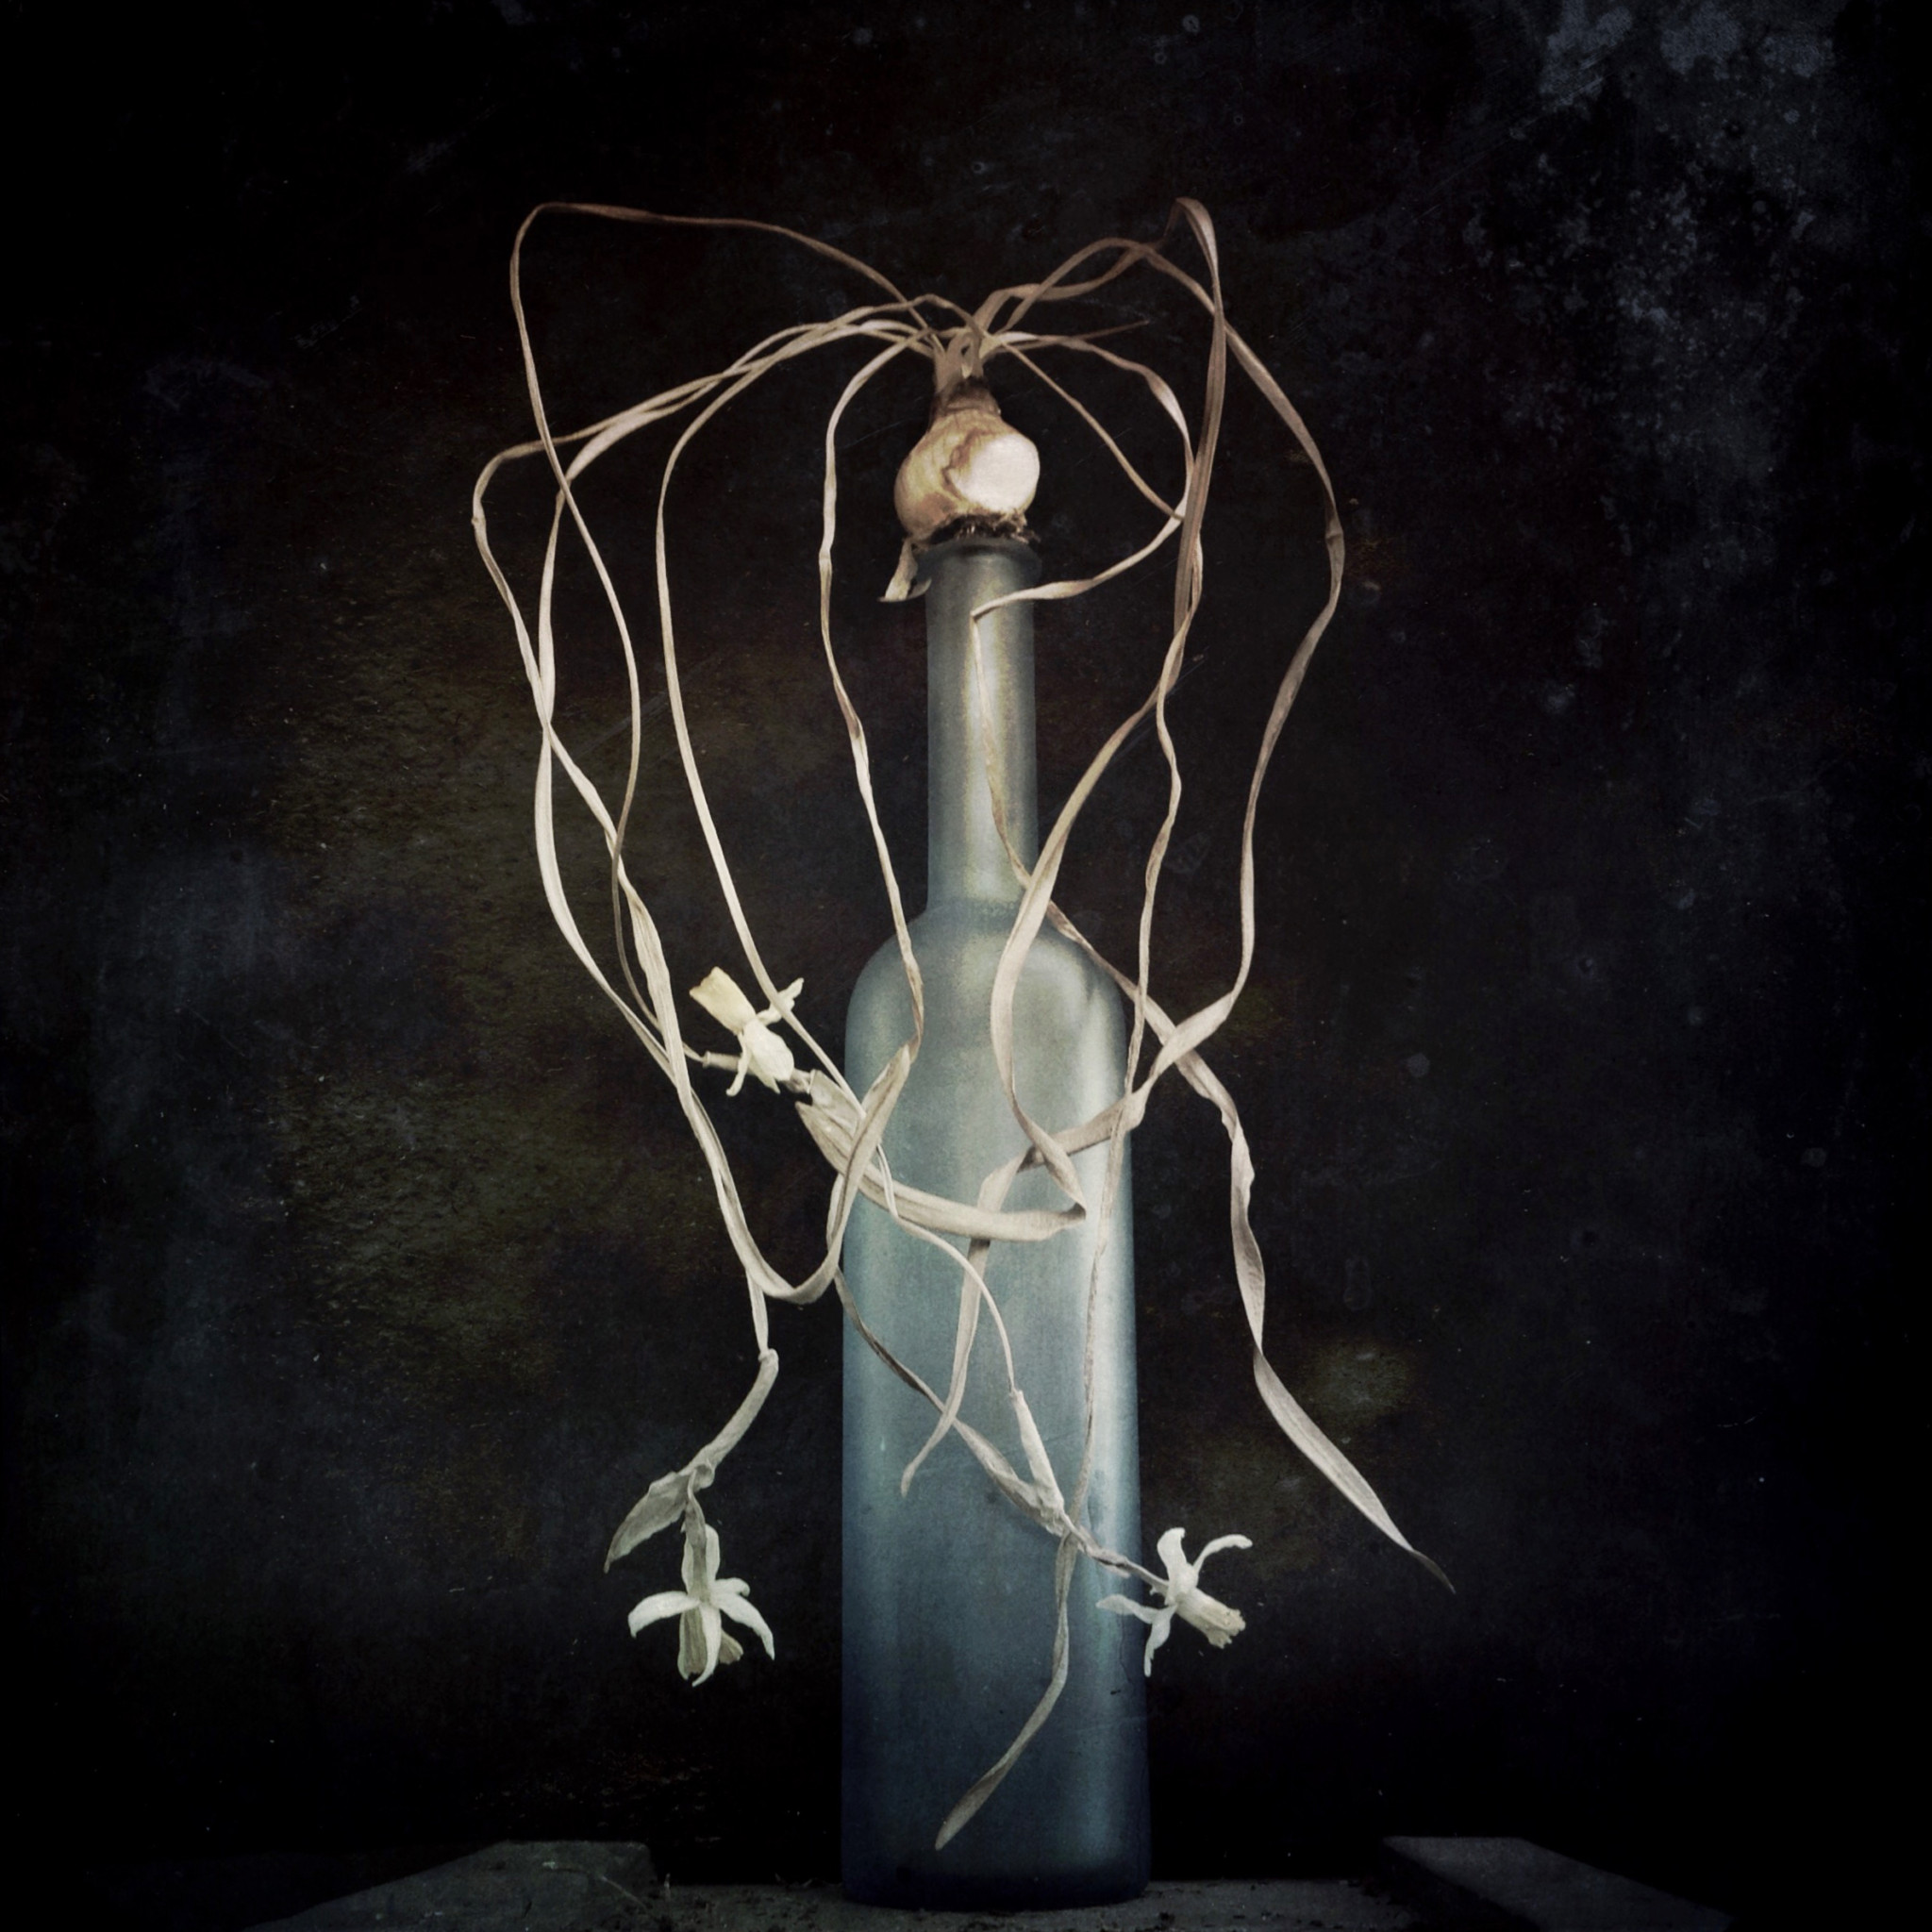 'Bulb and Bottle'